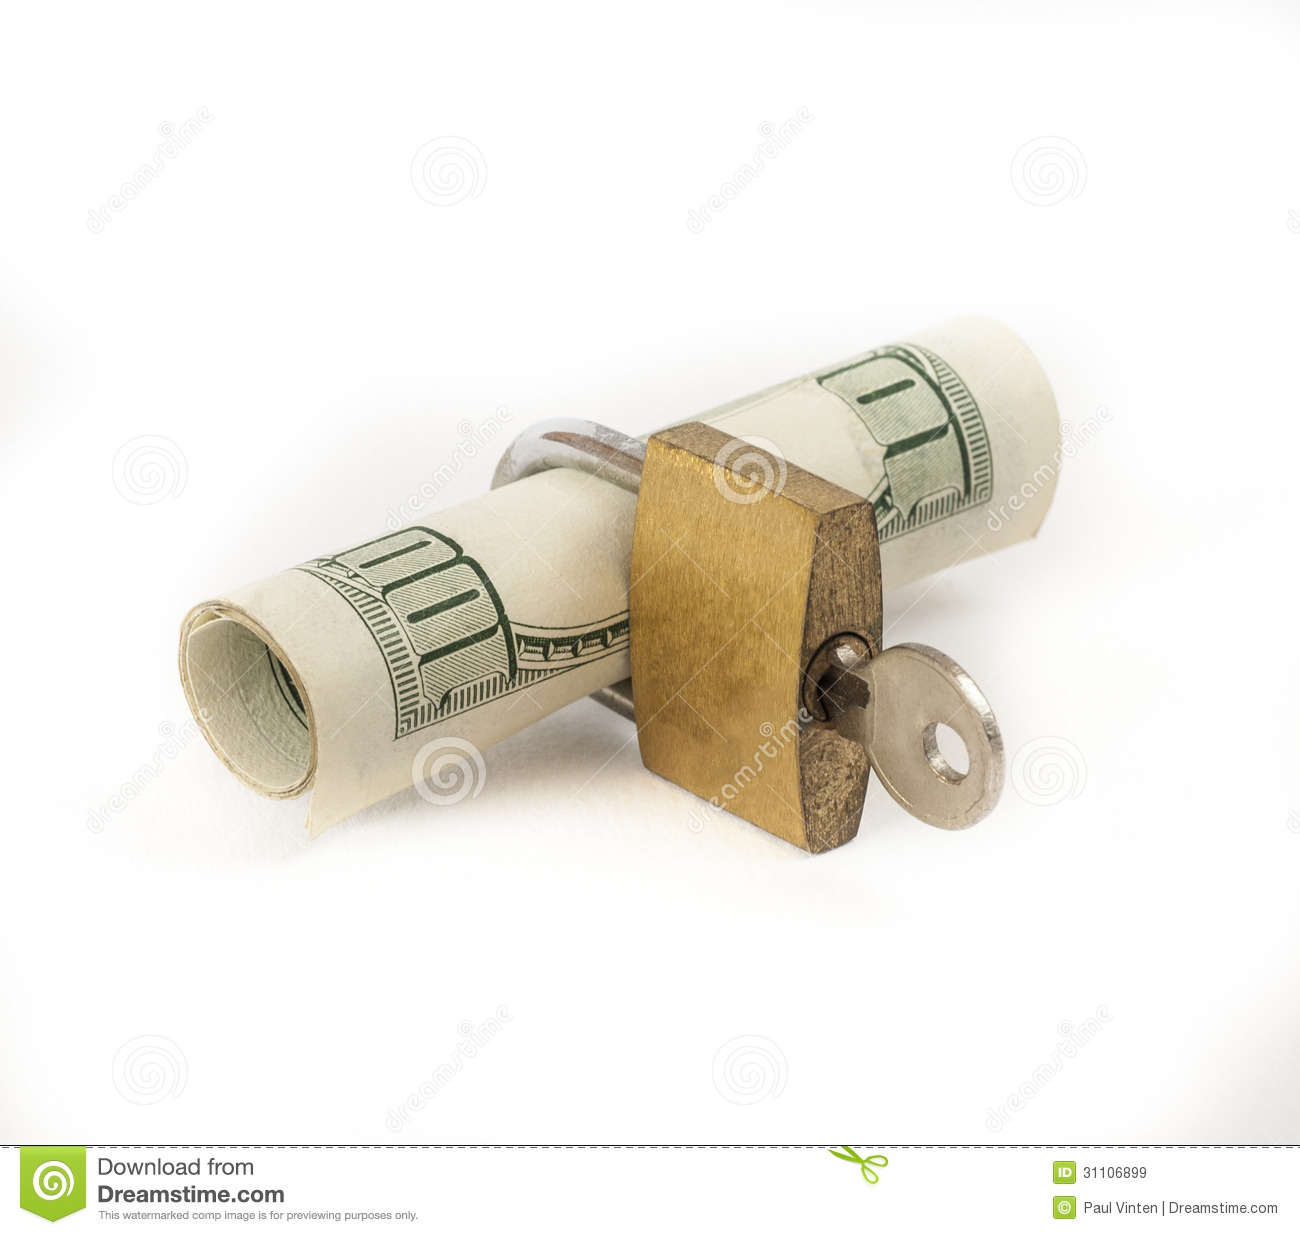 locked-finances-concept-currency-american-dollars-cash-padlock-isolated-white-background-financial-security-31106899.jpg